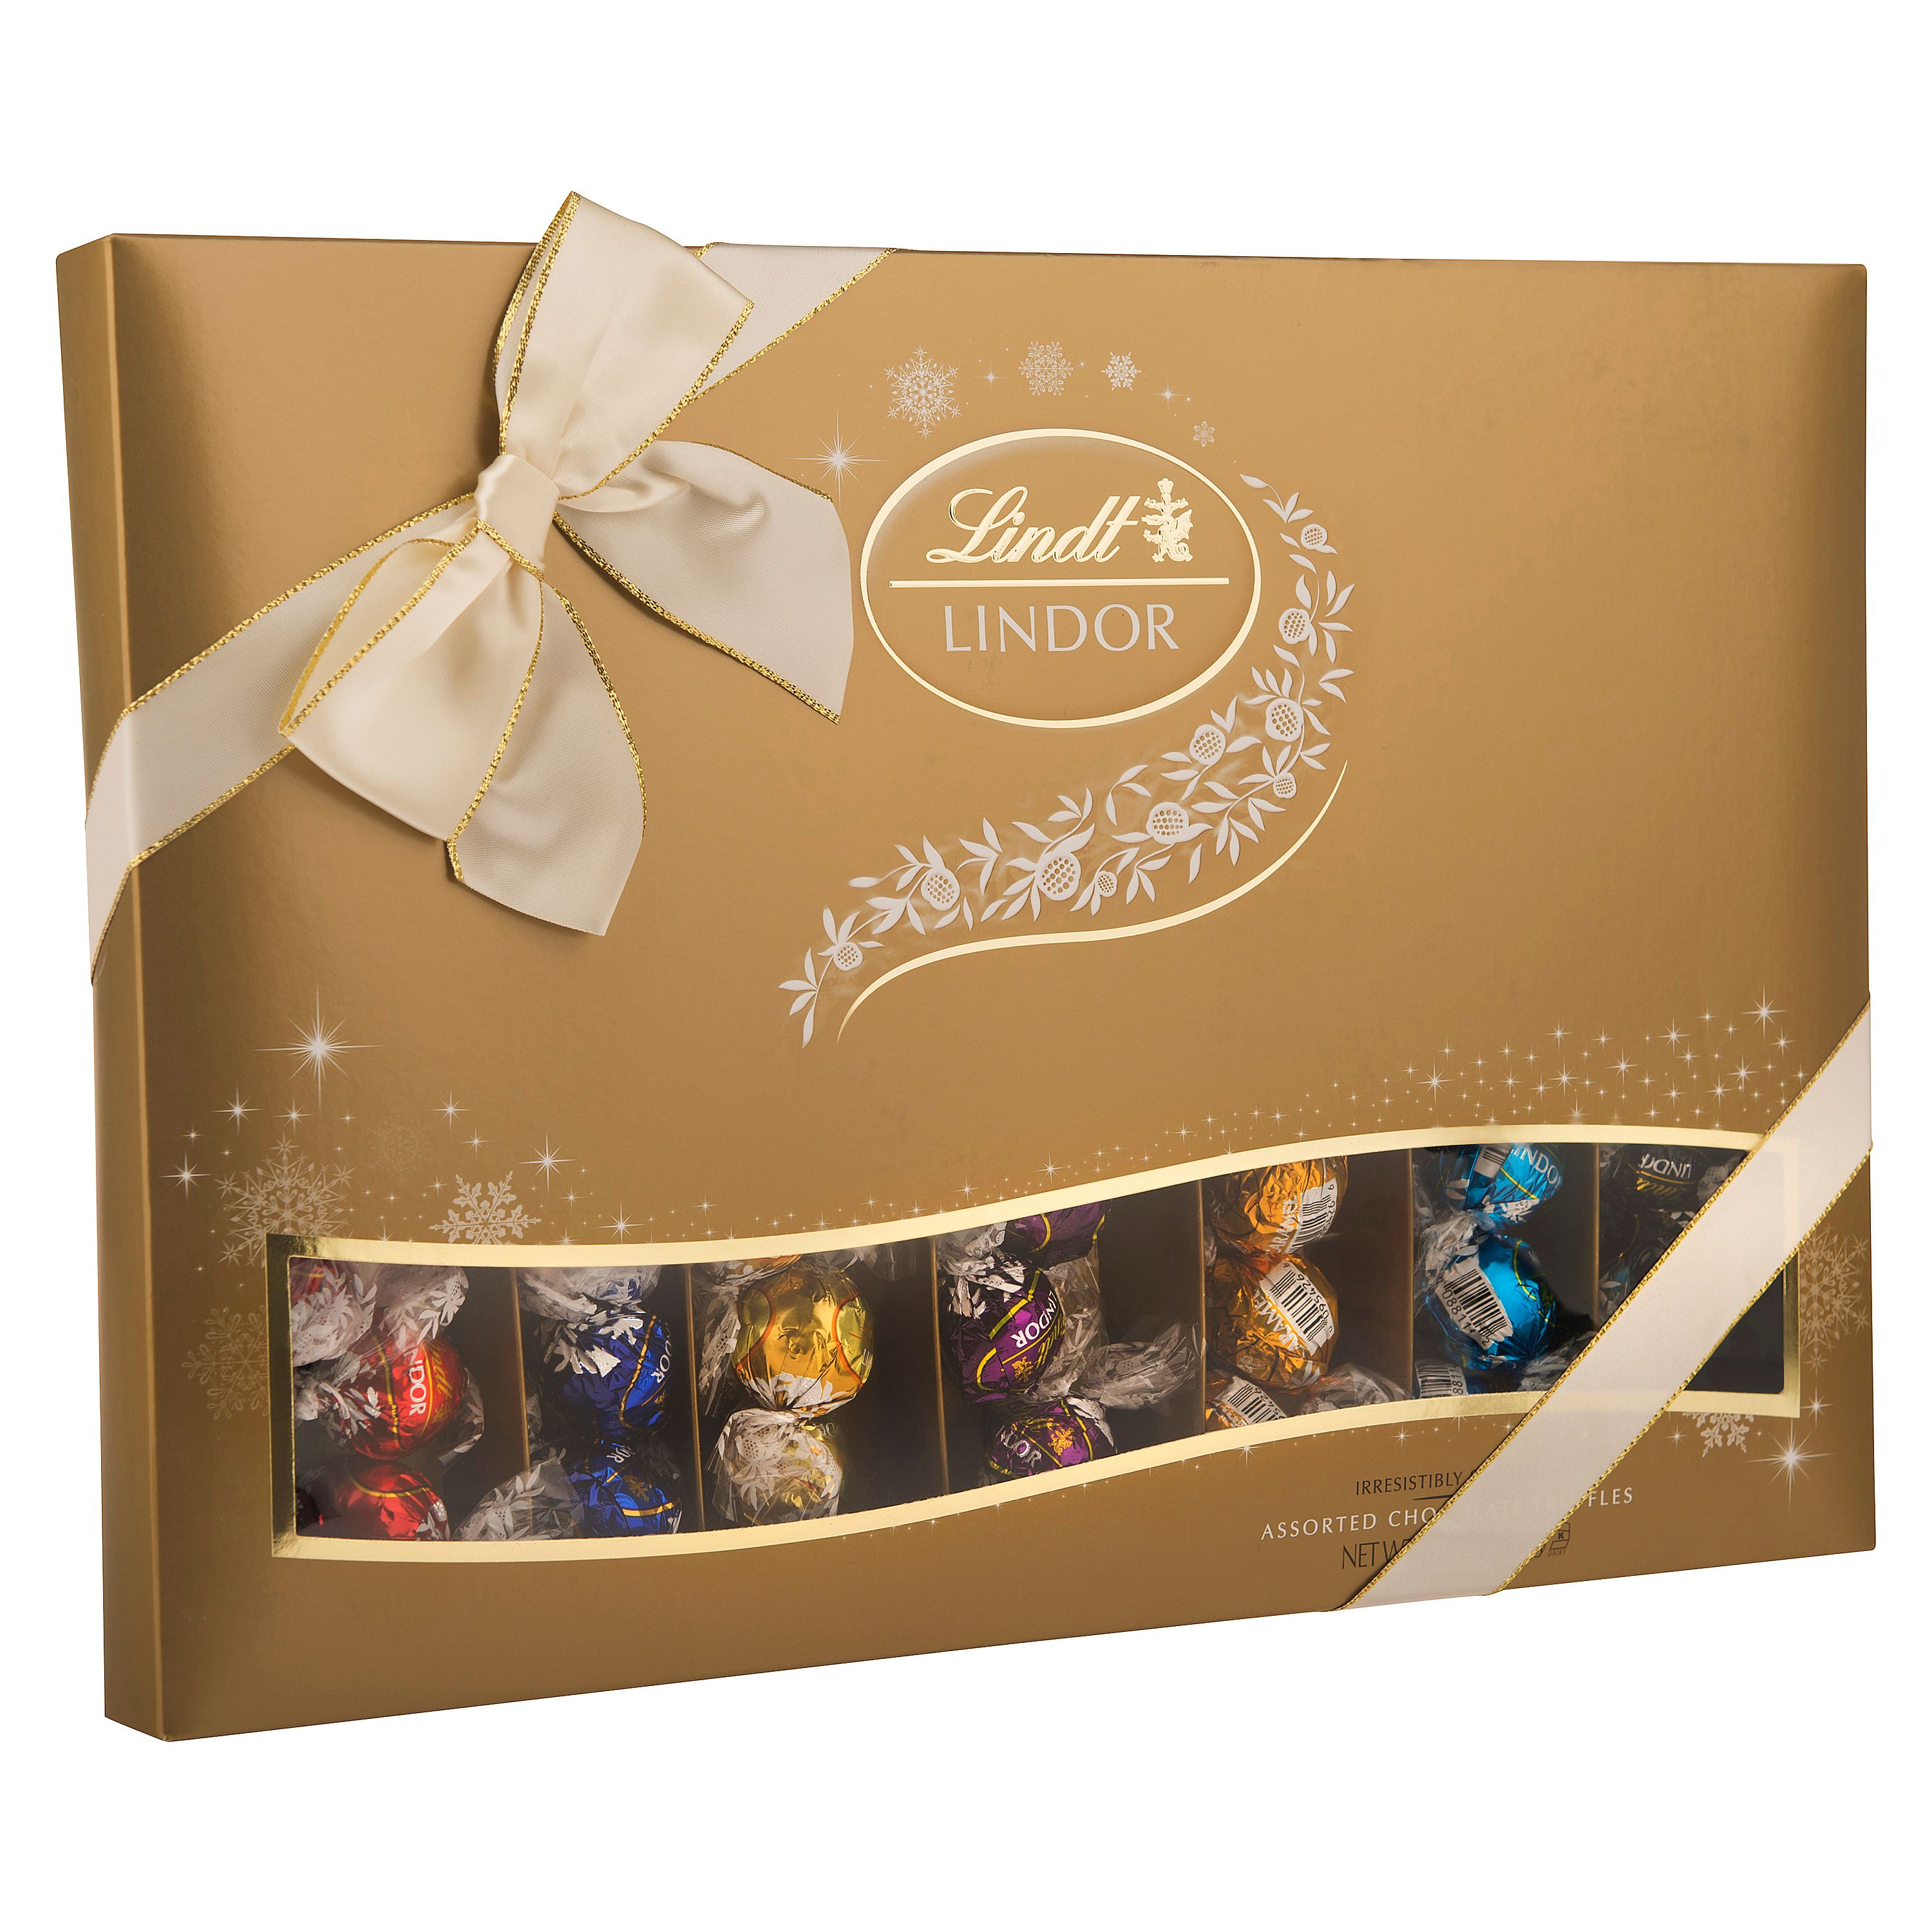 Lindt Lindor Deluxe Assorted Gift Box, 20.7 Oz.